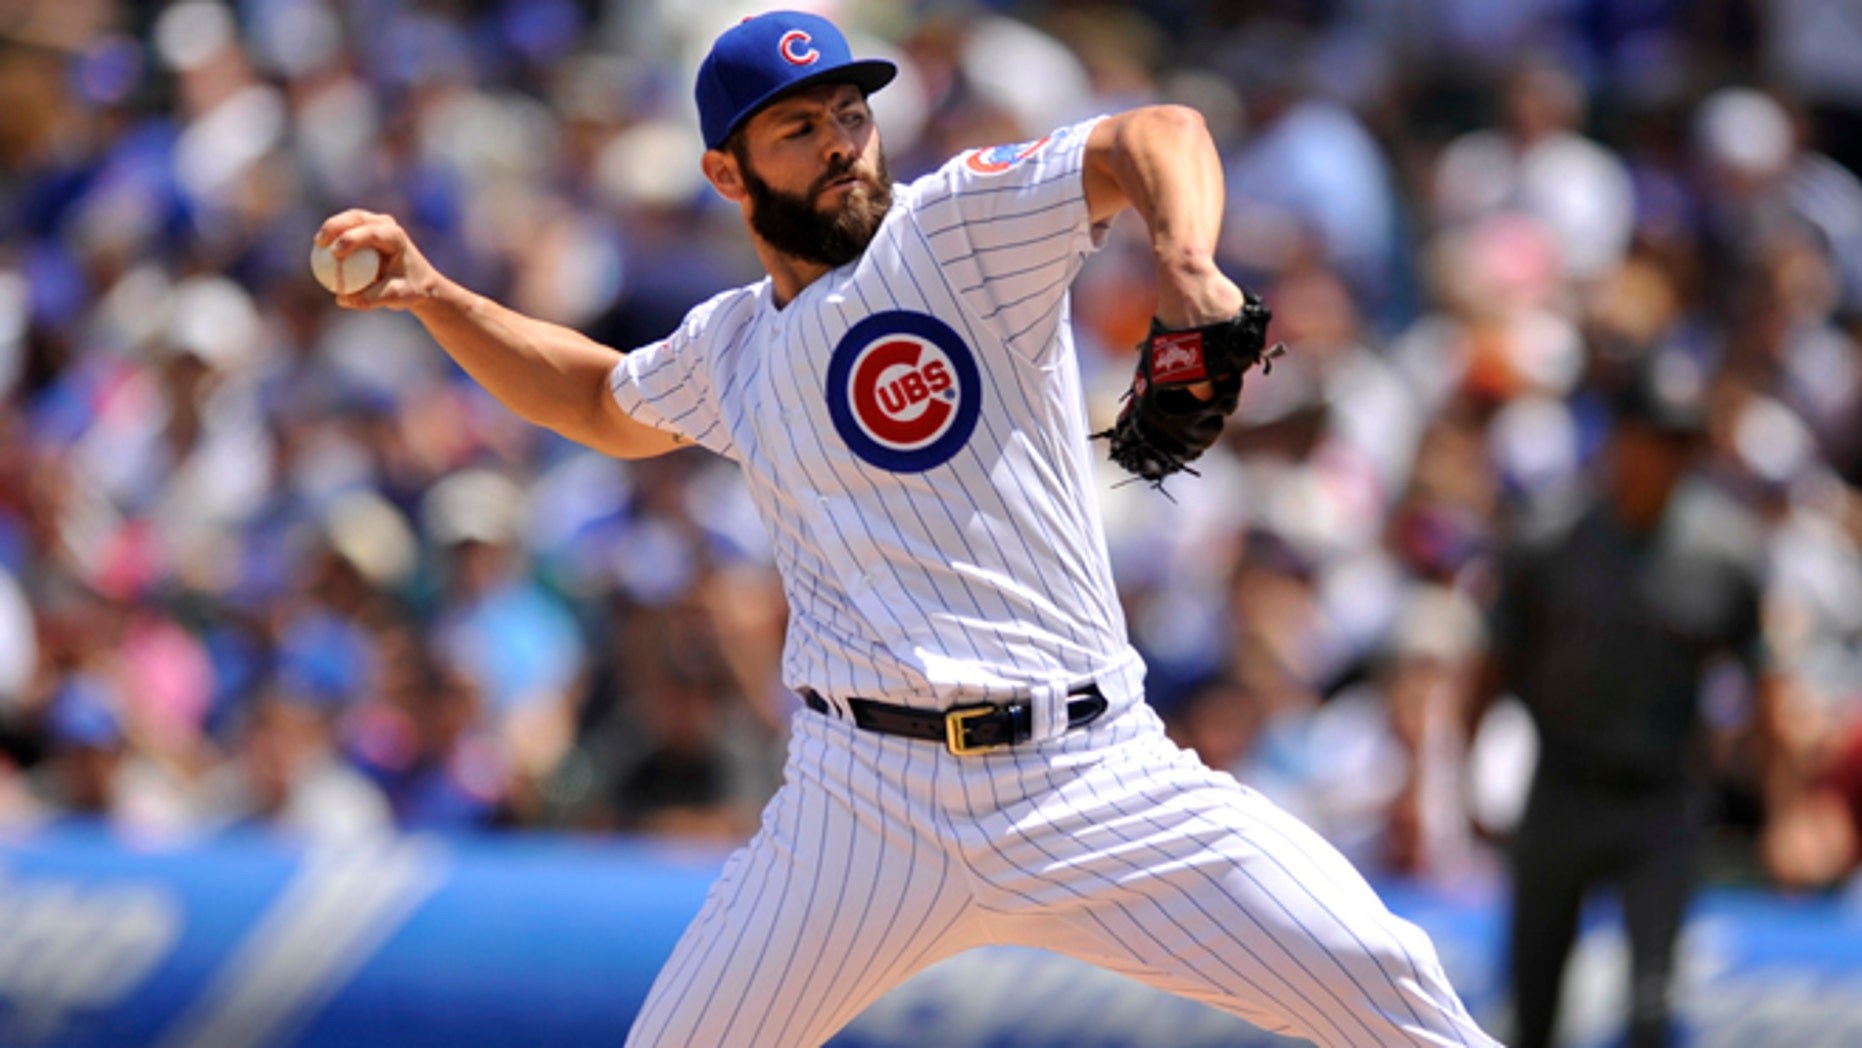 Chicago Cubs starter Jake Arrieta delivers a pitch during the first inning of a baseball game against the Arizona Diamondbacks, Sunday, June 5, 2016, in Chicago. (AP Photo/Paul Beaty)